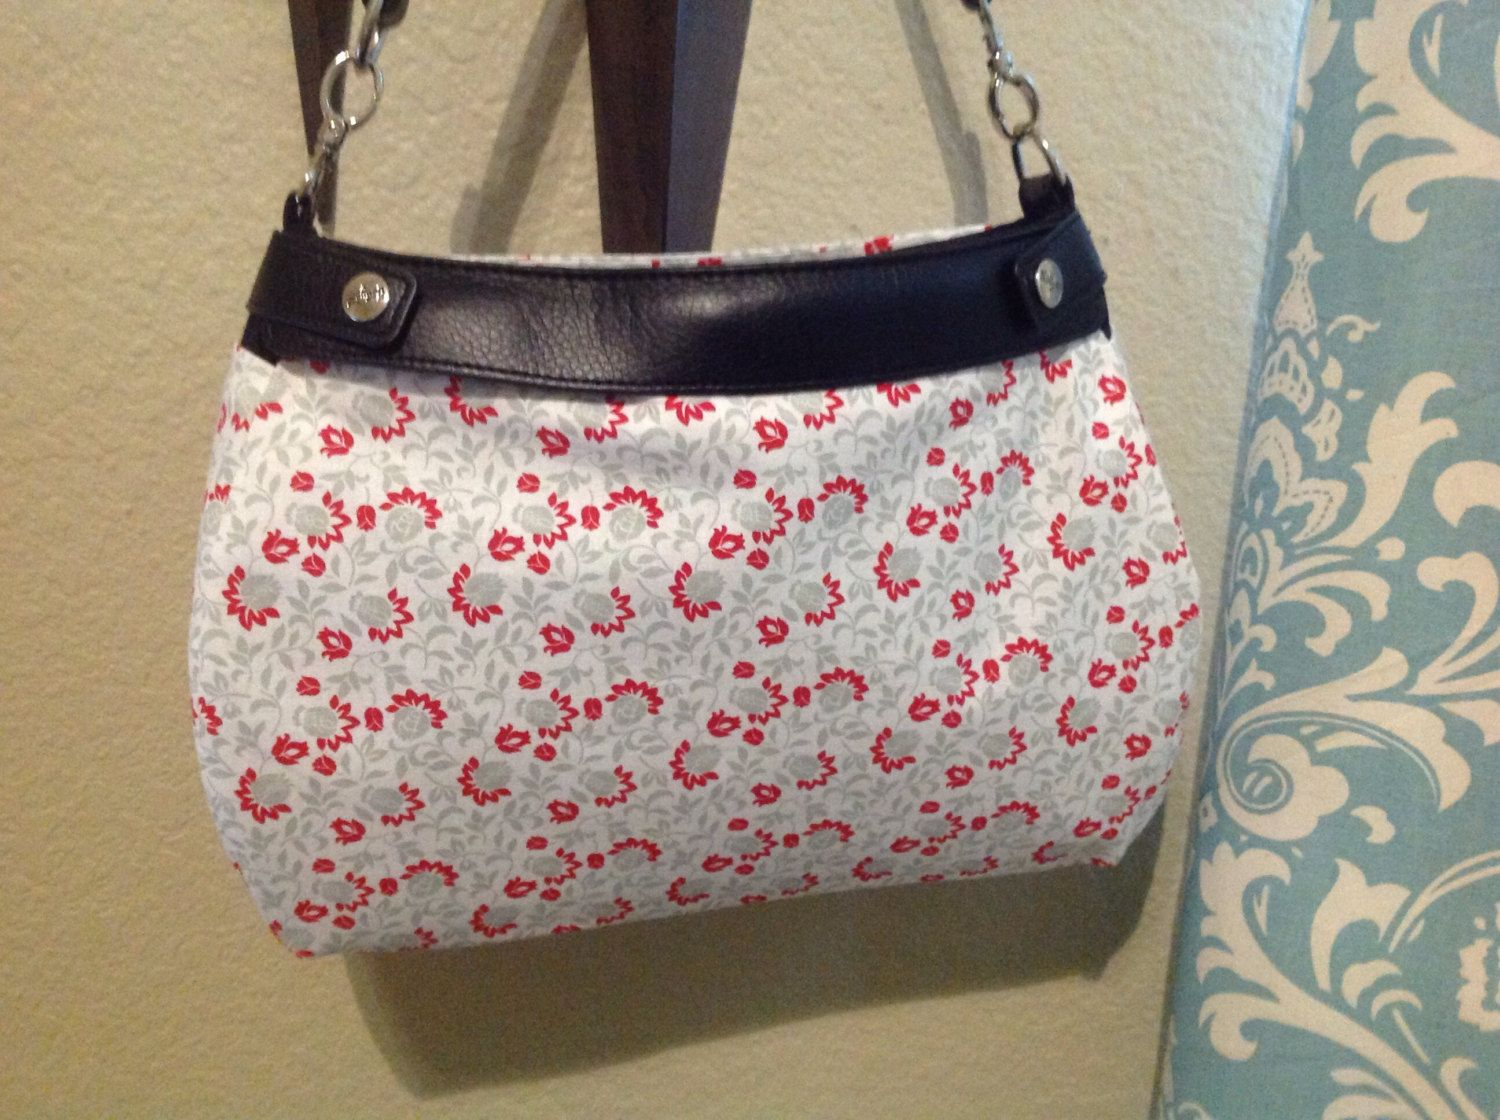 grey and red floral suite purse skirt cover handmade Thirty one by ShellyJayneCovers on Etsy